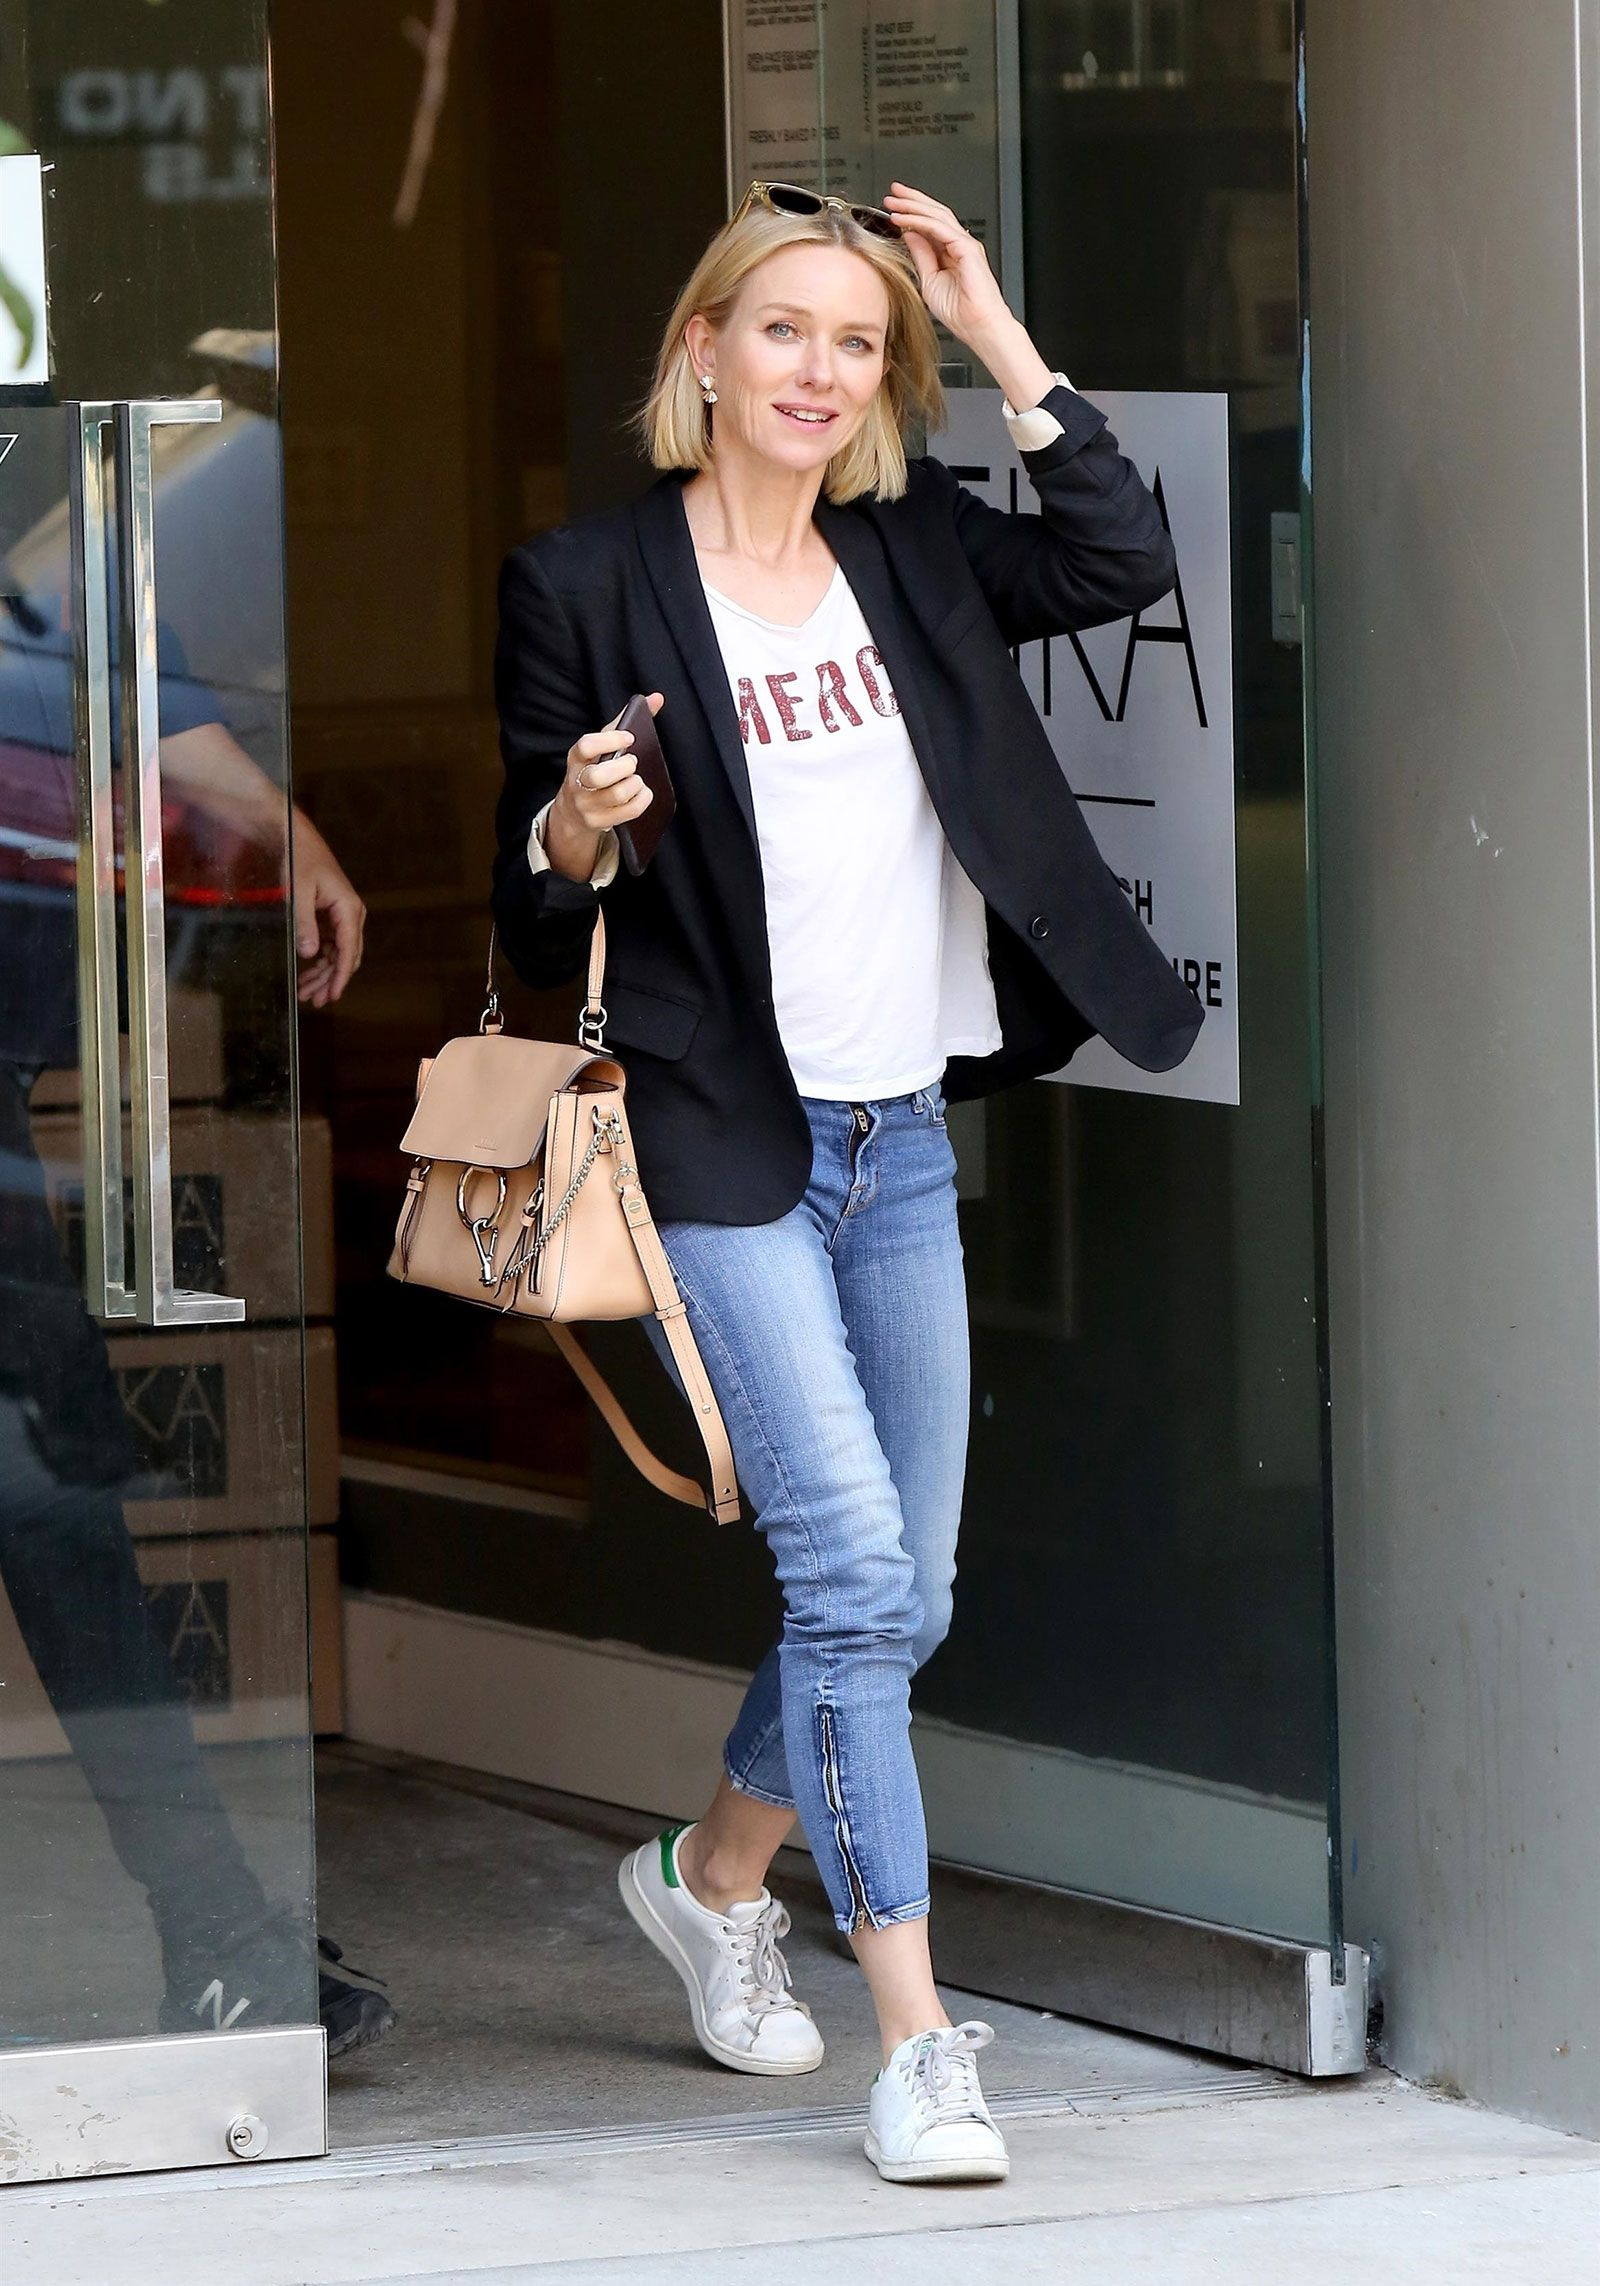 34b57e3fa6dcf Naomi Watts  Blazer and Adidas Sneakers Look for Less